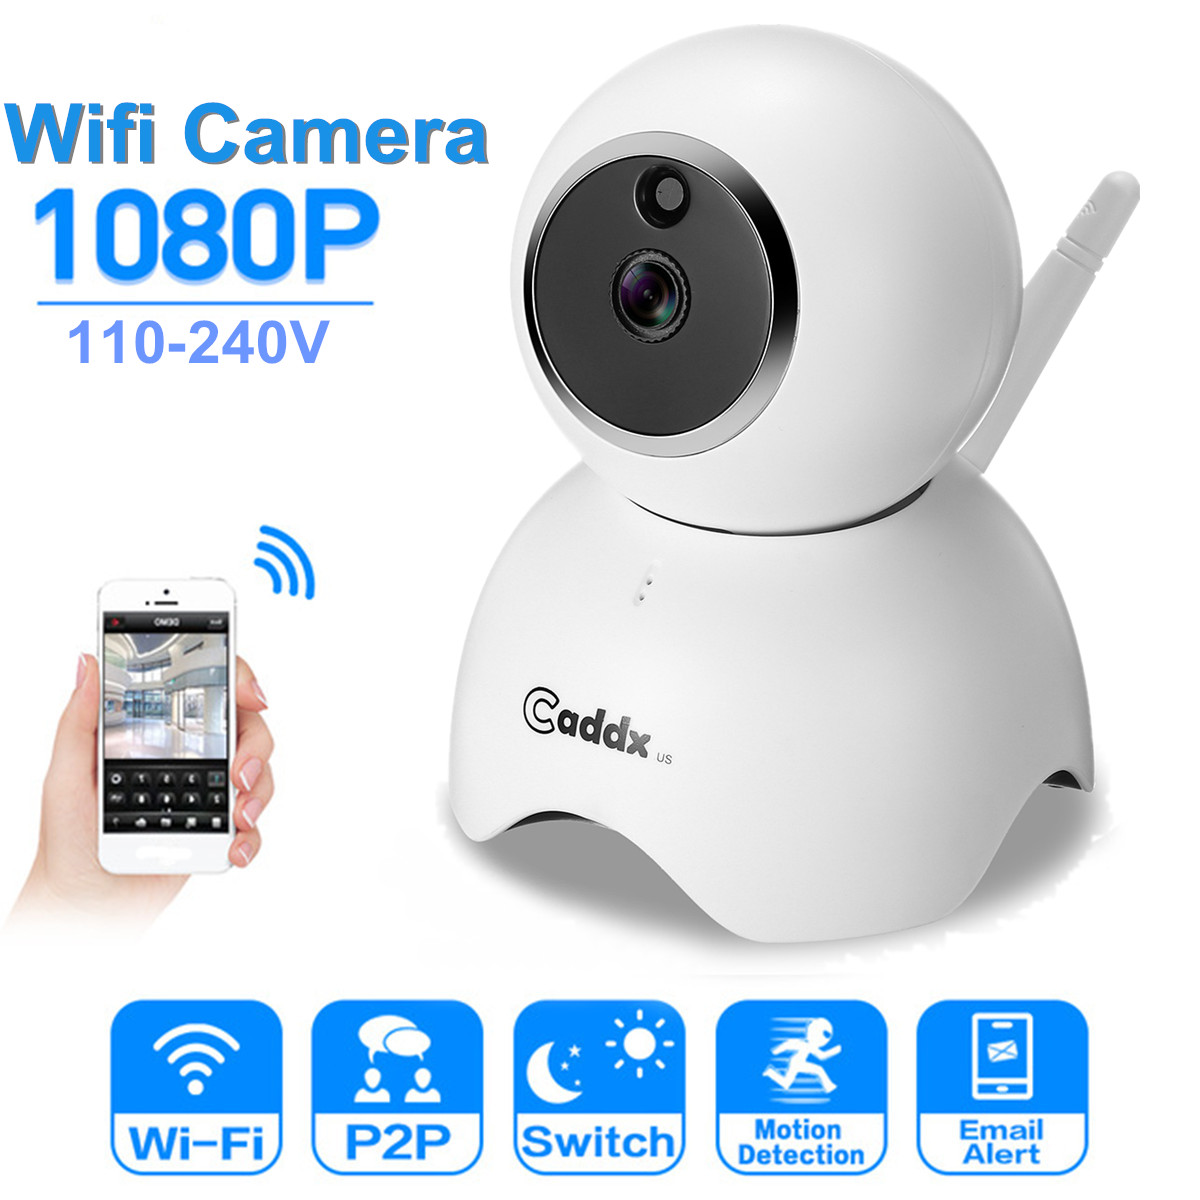 Wireless 1080P HD Wifi IP Camera CCTV Security Night Vision Surveillance Monitor H.264 Noise Suppression Air-Join Multi-user